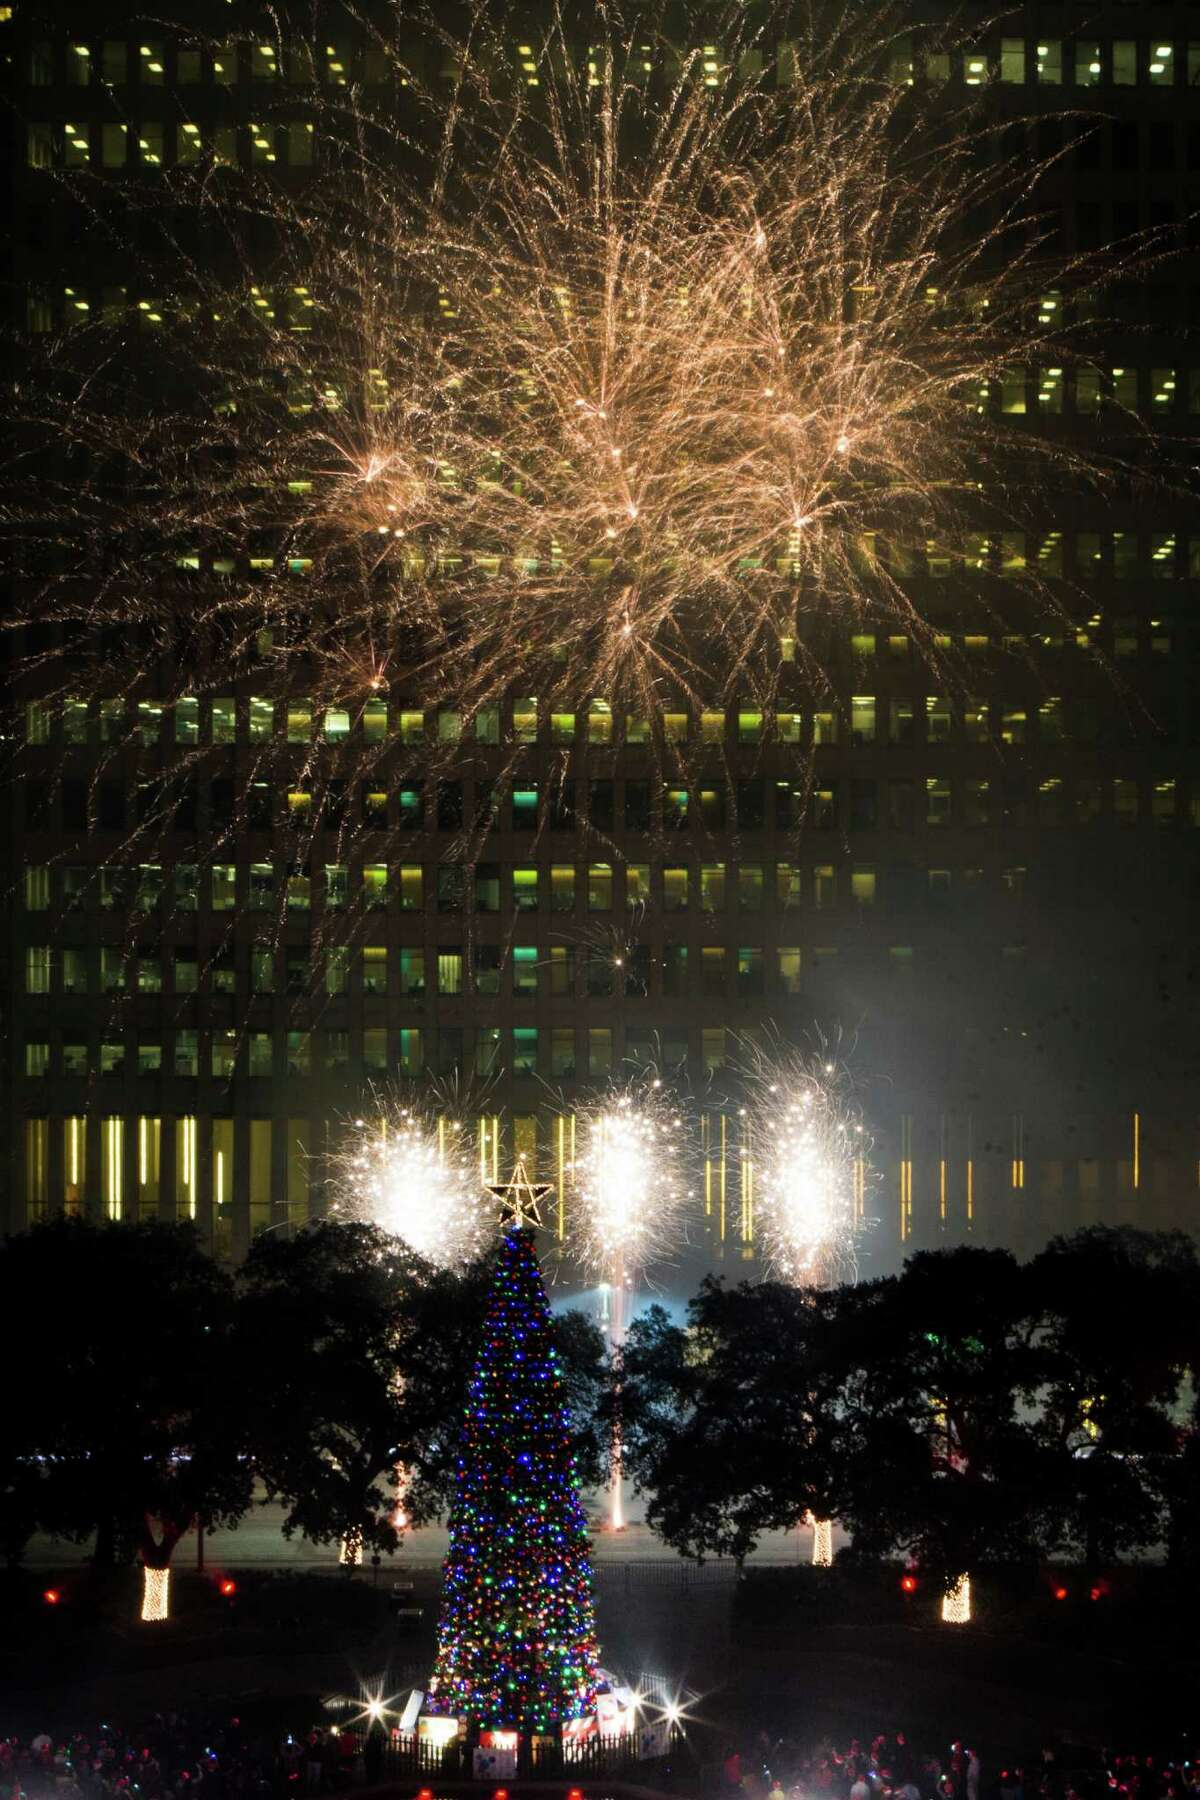 Fireworks put on a show behind the Christmas tree of Houston City Hall on Friday.